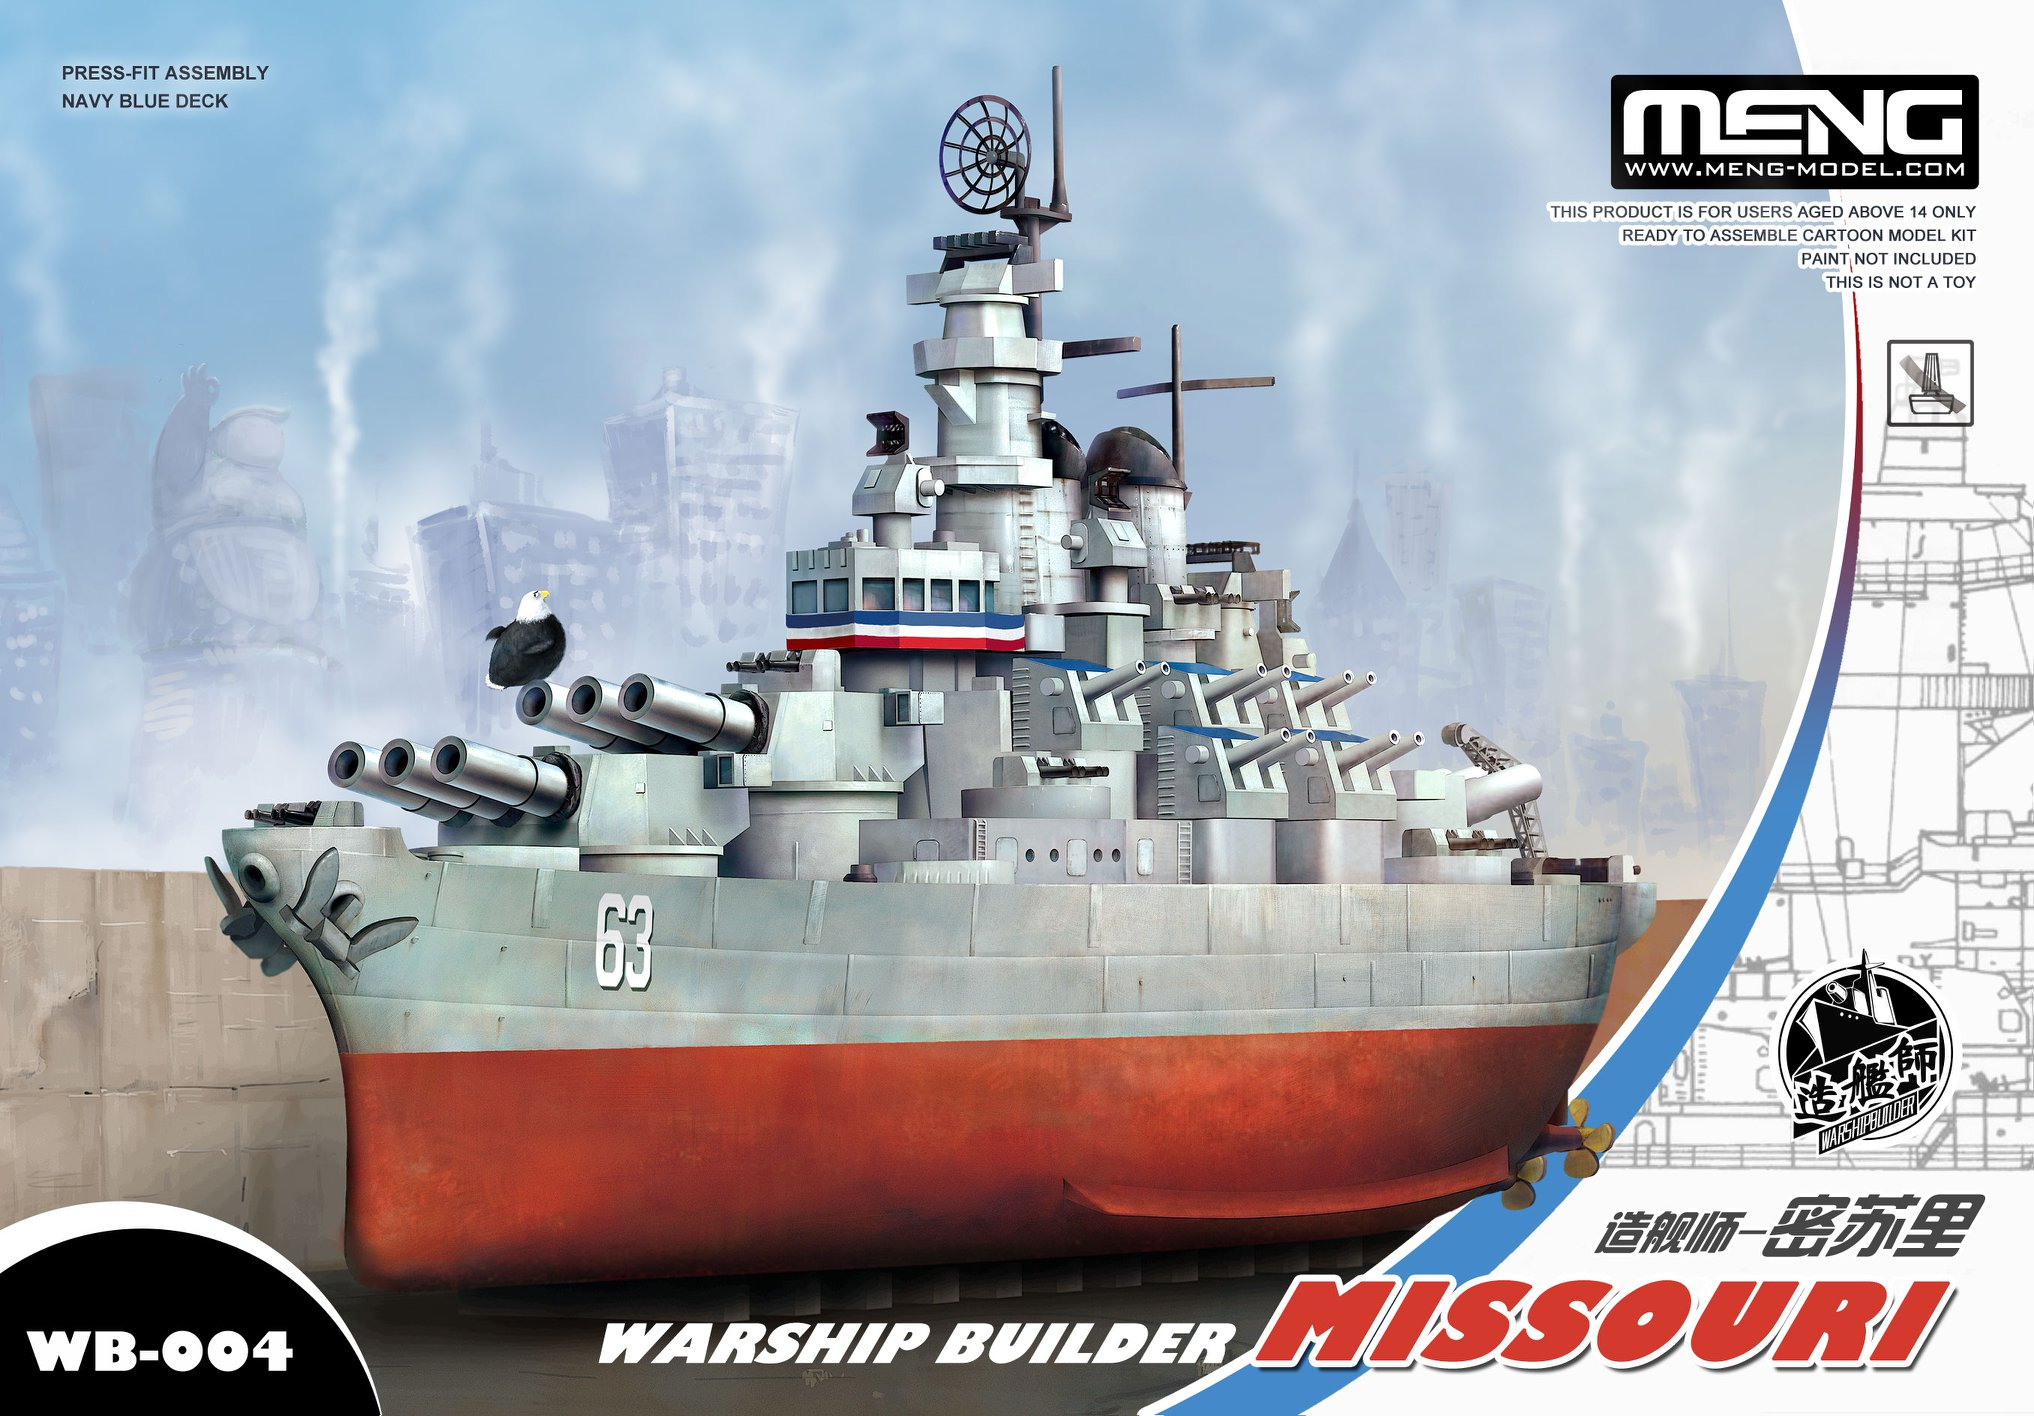 Warship Builder - Missouri (Cartoon model)